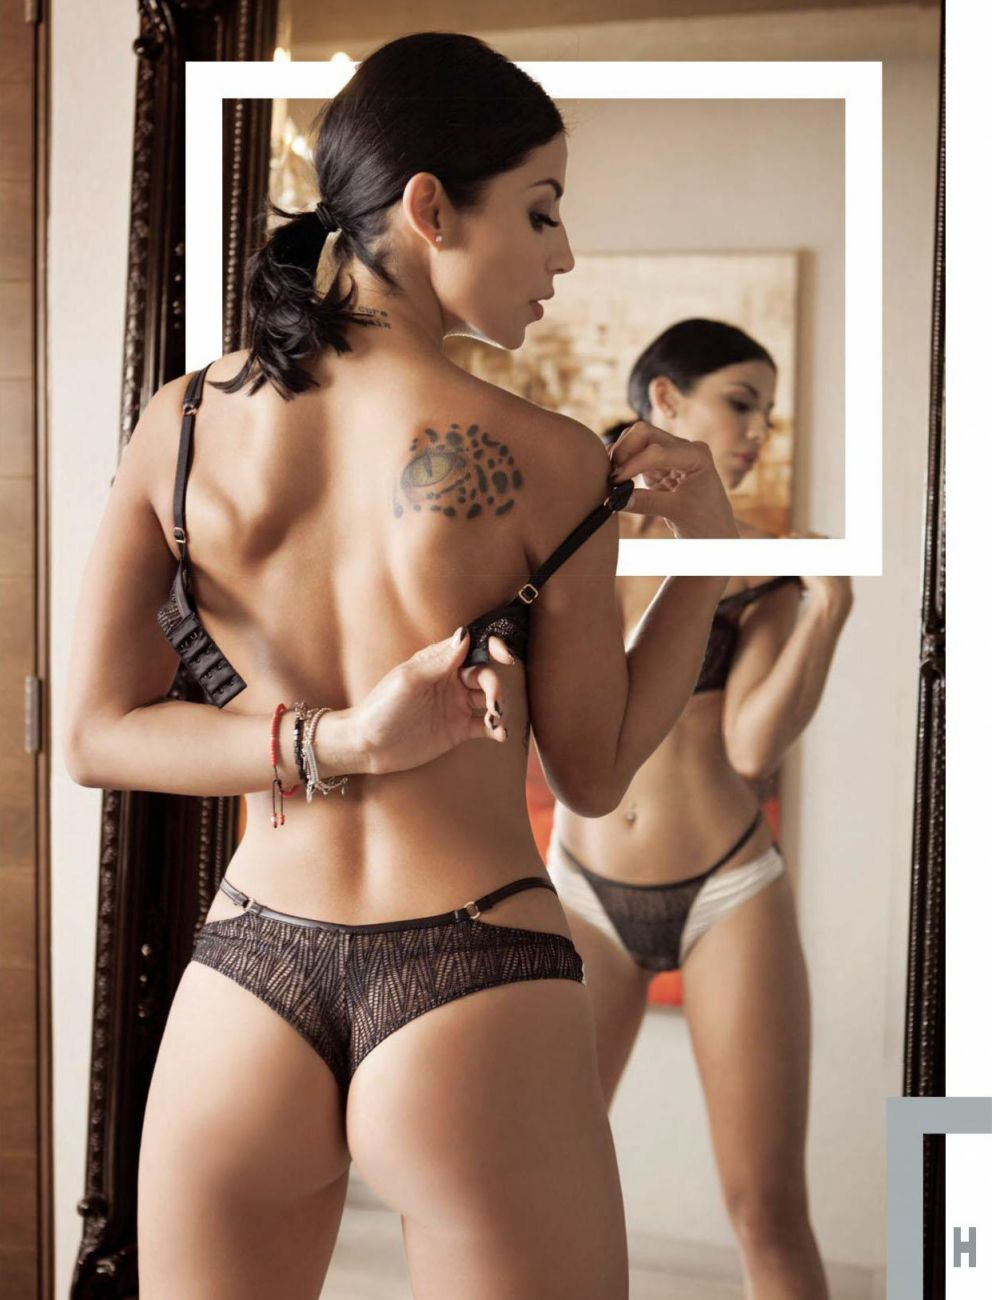 Just learning victoria sin bigbuttslikeitbig picture gallery big titties